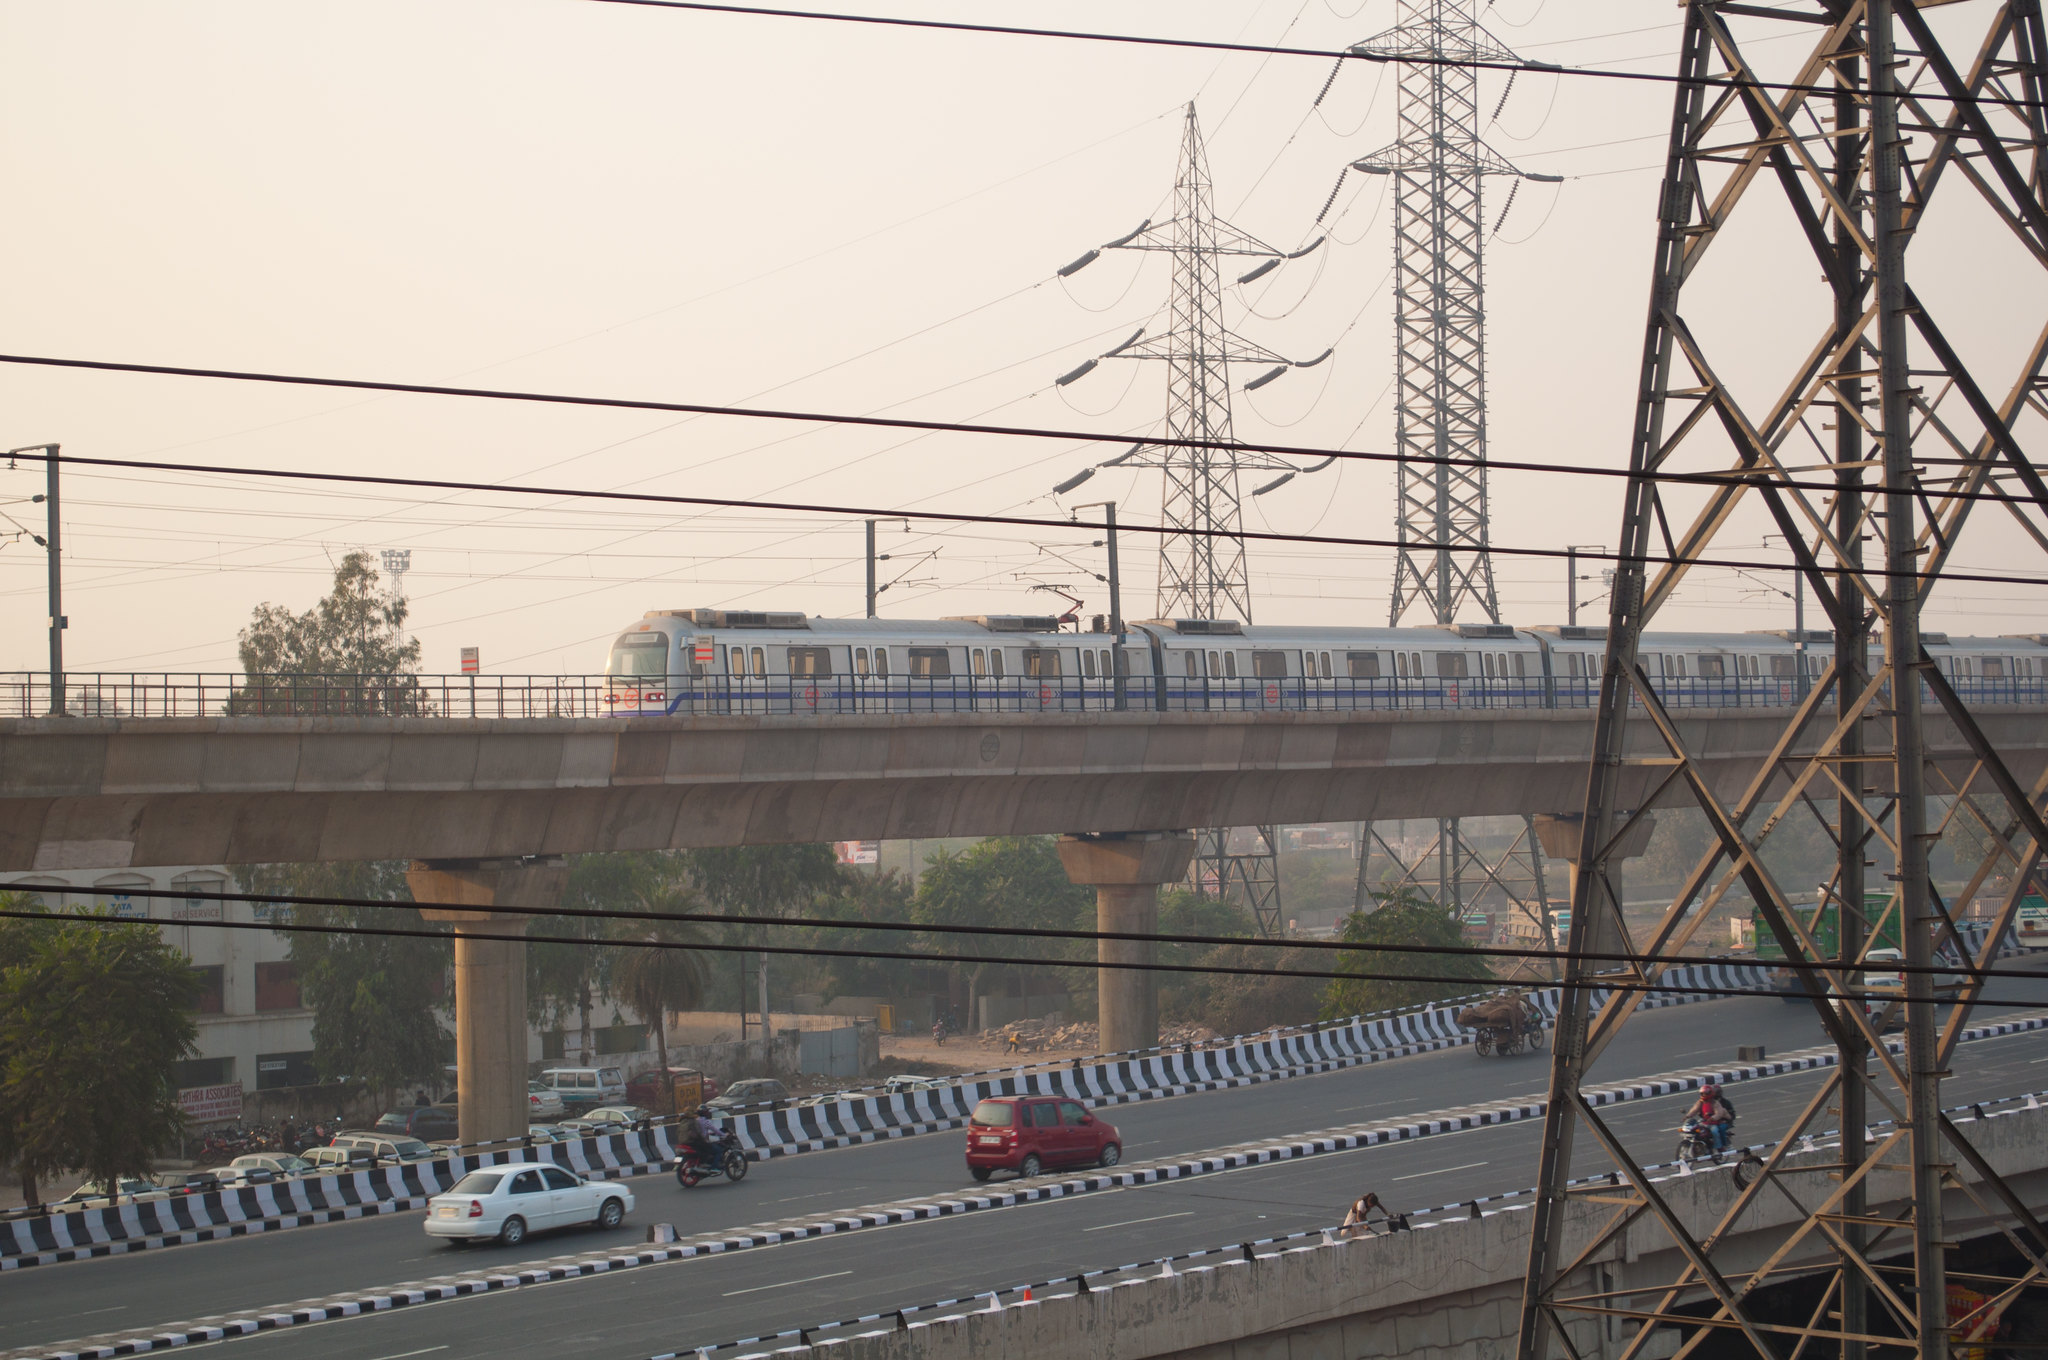 <p>Transportation is a major contributor to Delhi\'s low air quality, but clean transport is also a solution. Photo by Rishabh Mathur/Flickr.</p>